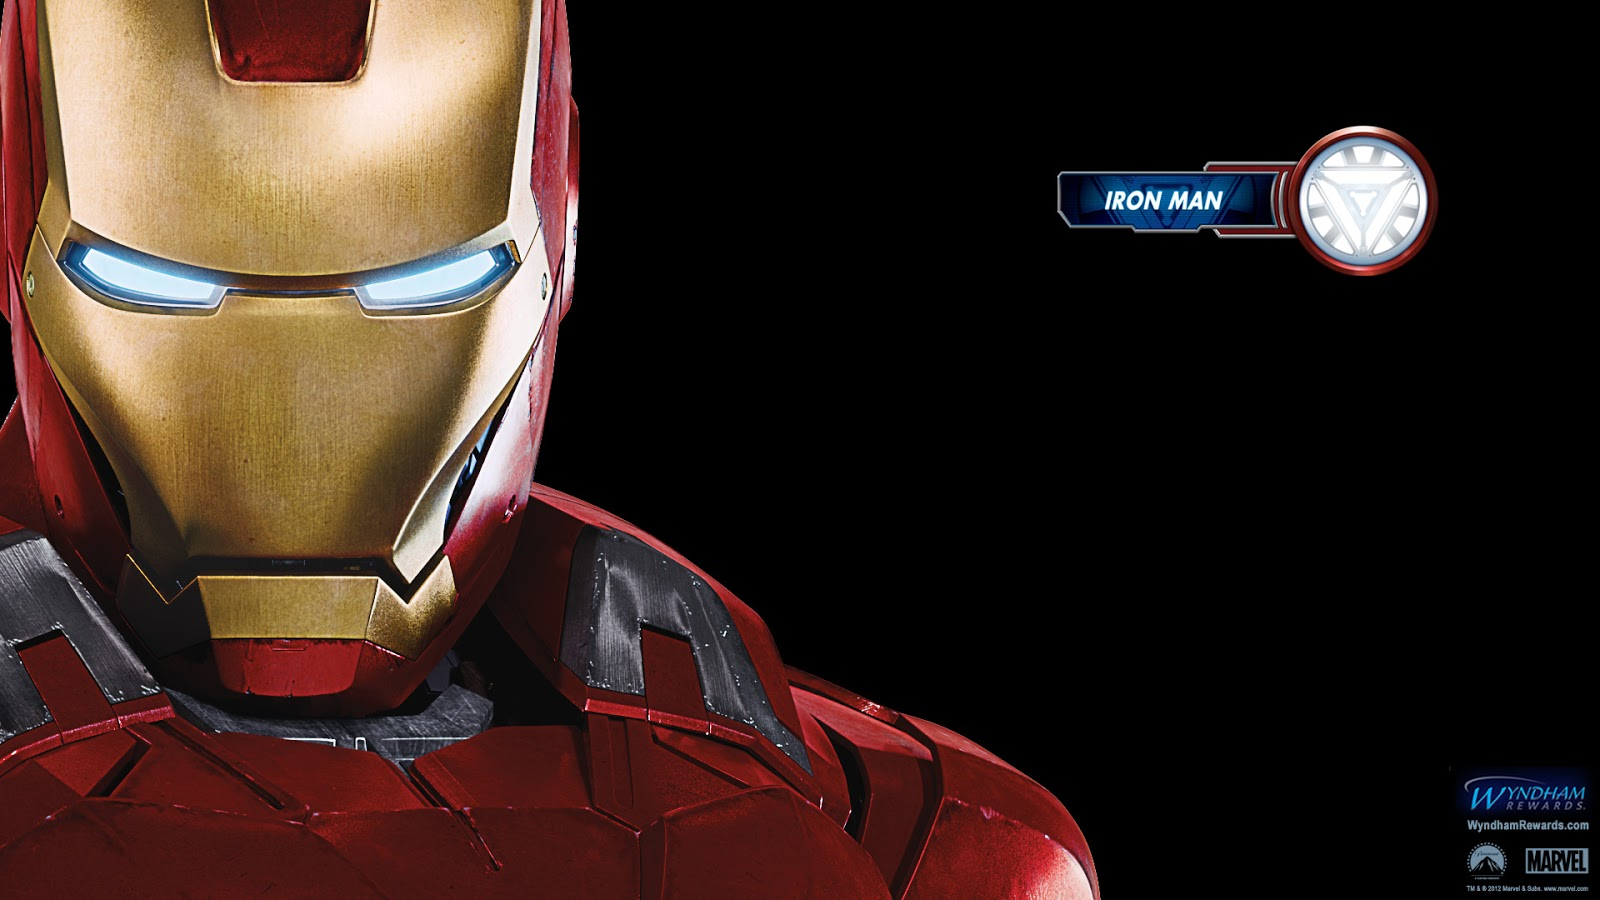 Ironman+3+in+The+Avengers+movie+Poster